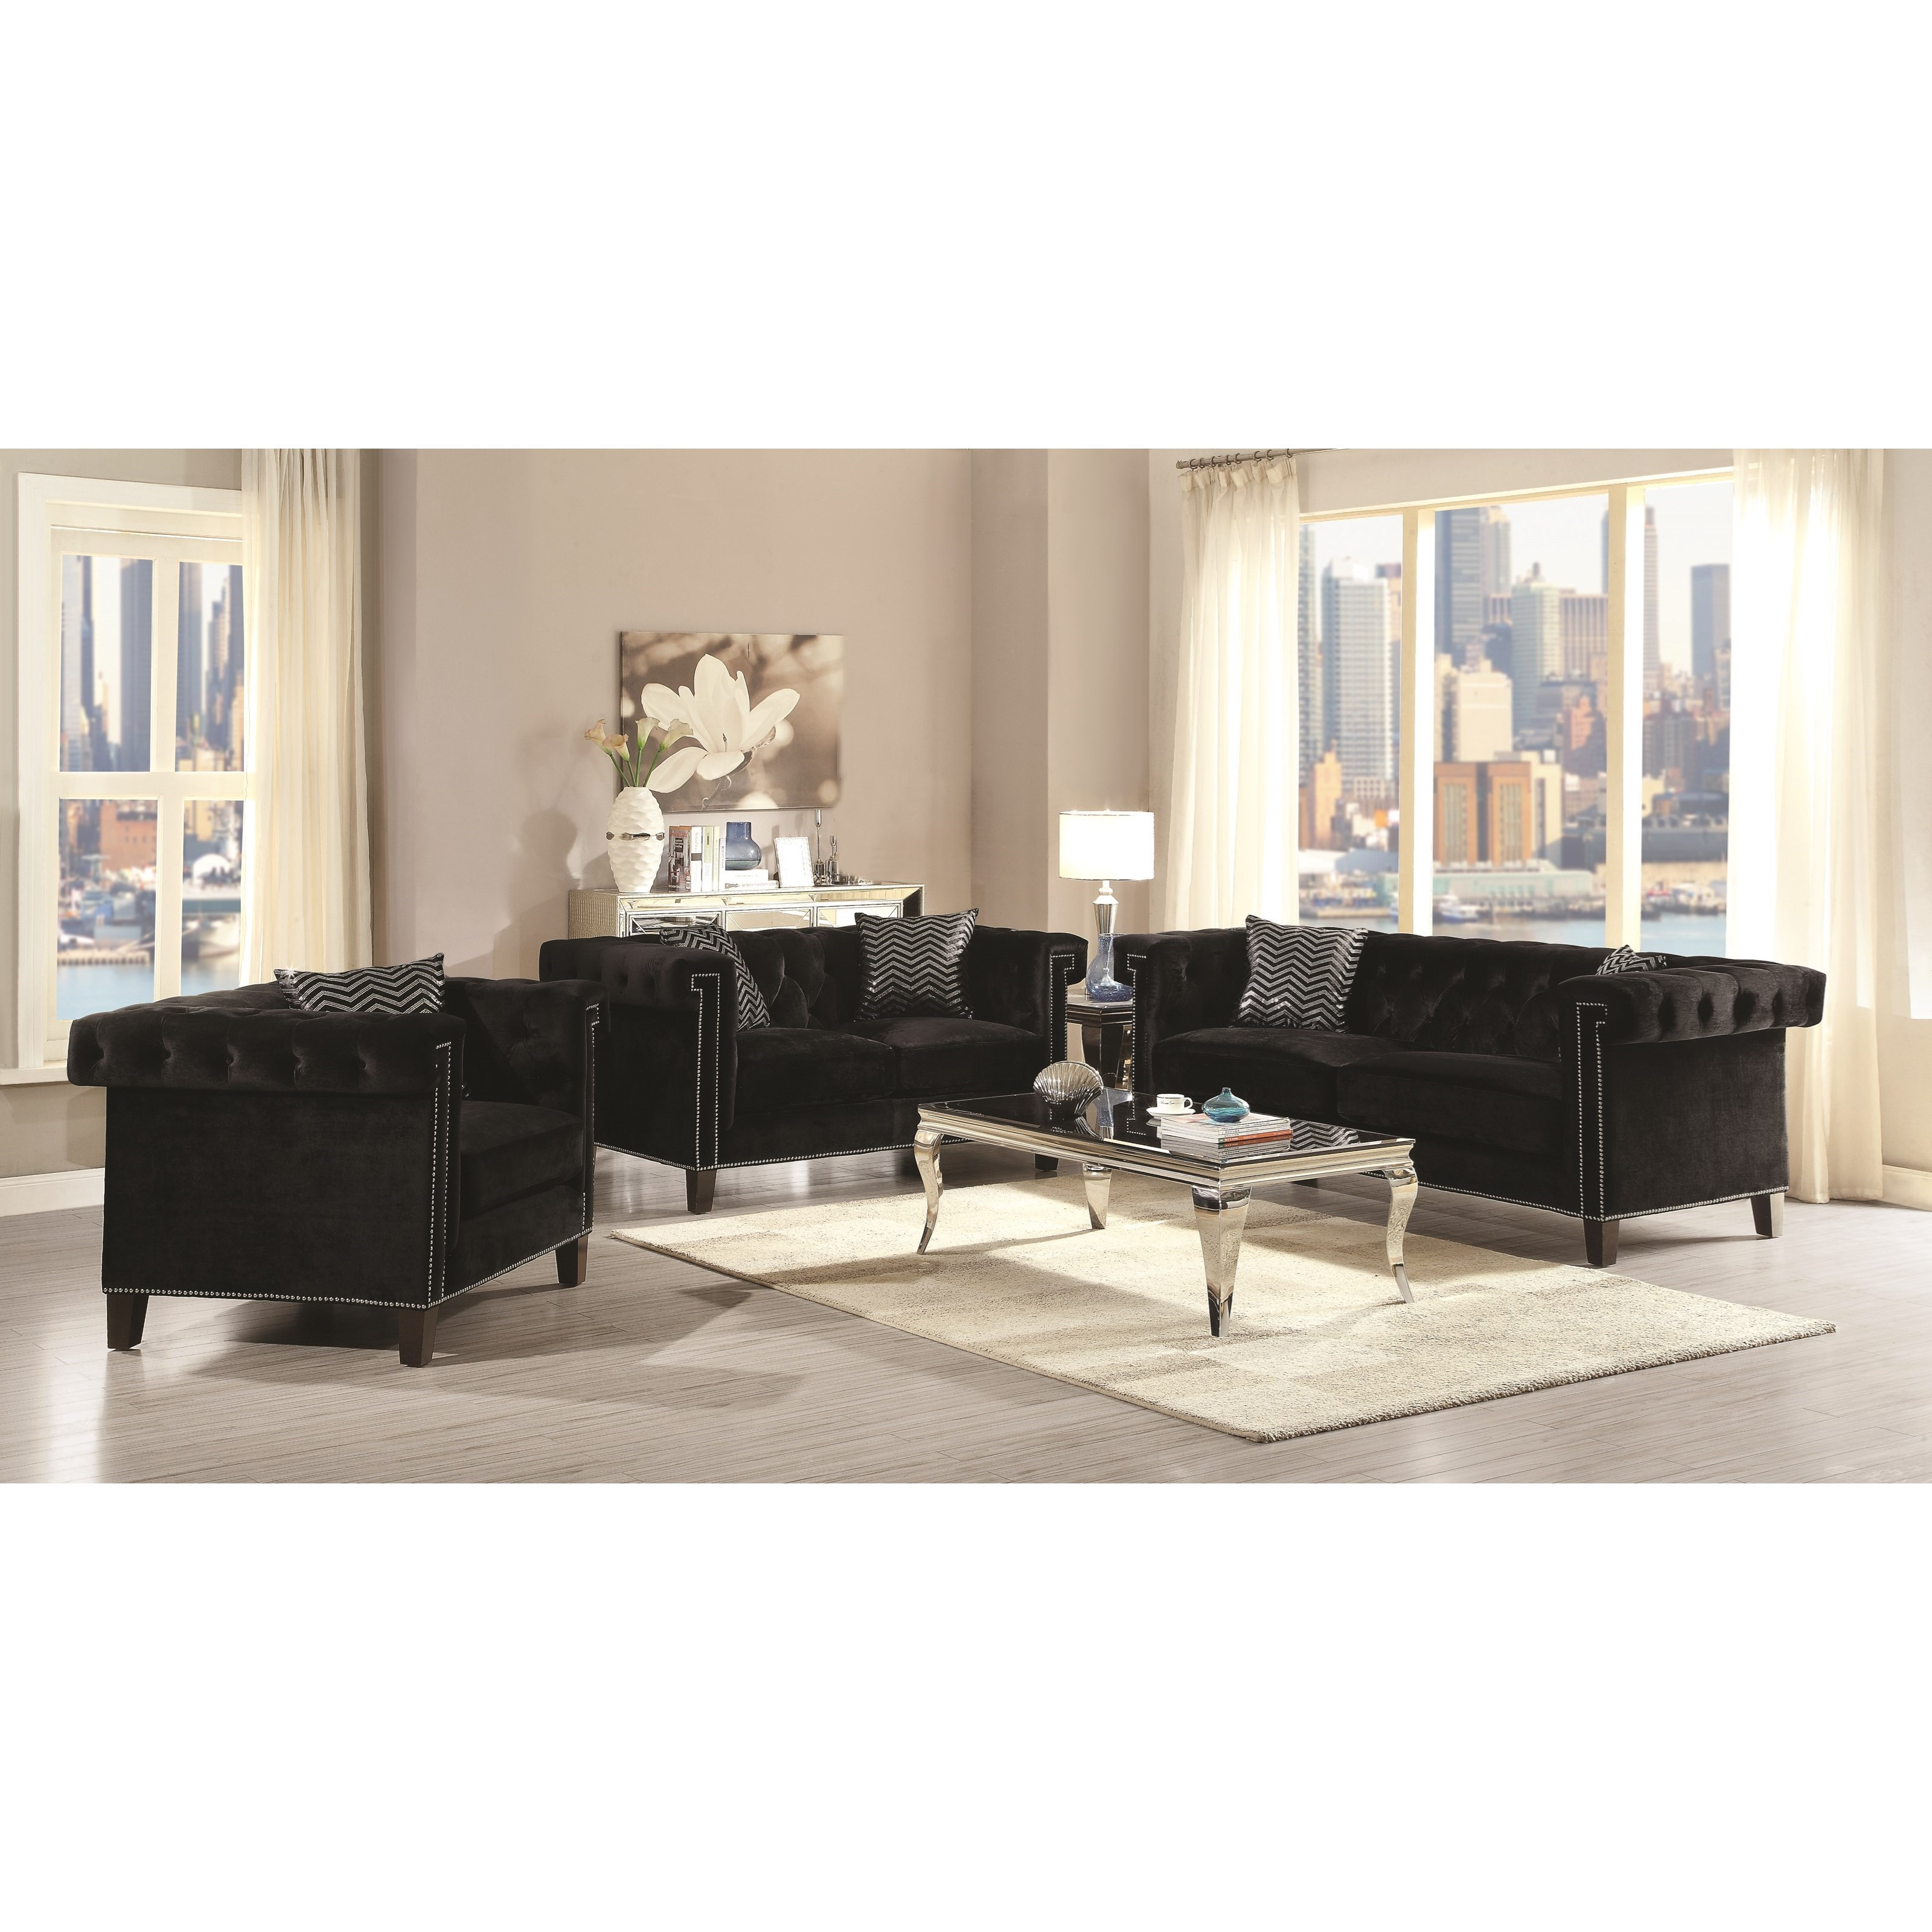 Coaster Reventlow Glamorous Living Room Group | Value City Furniture ...